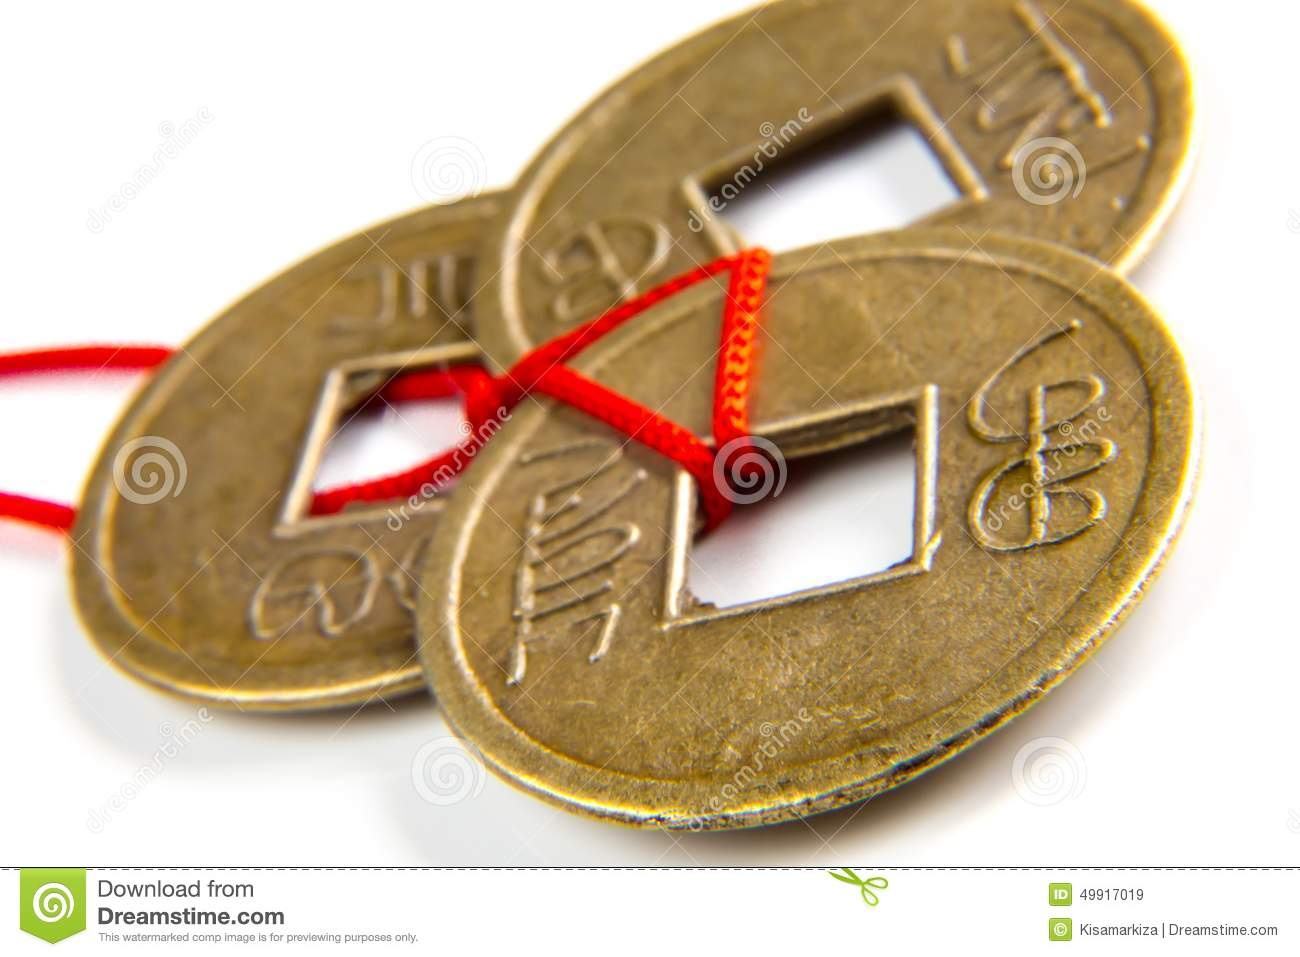 Feng shui lucky coins stock image. Image of golden, bronze ... - photo#33